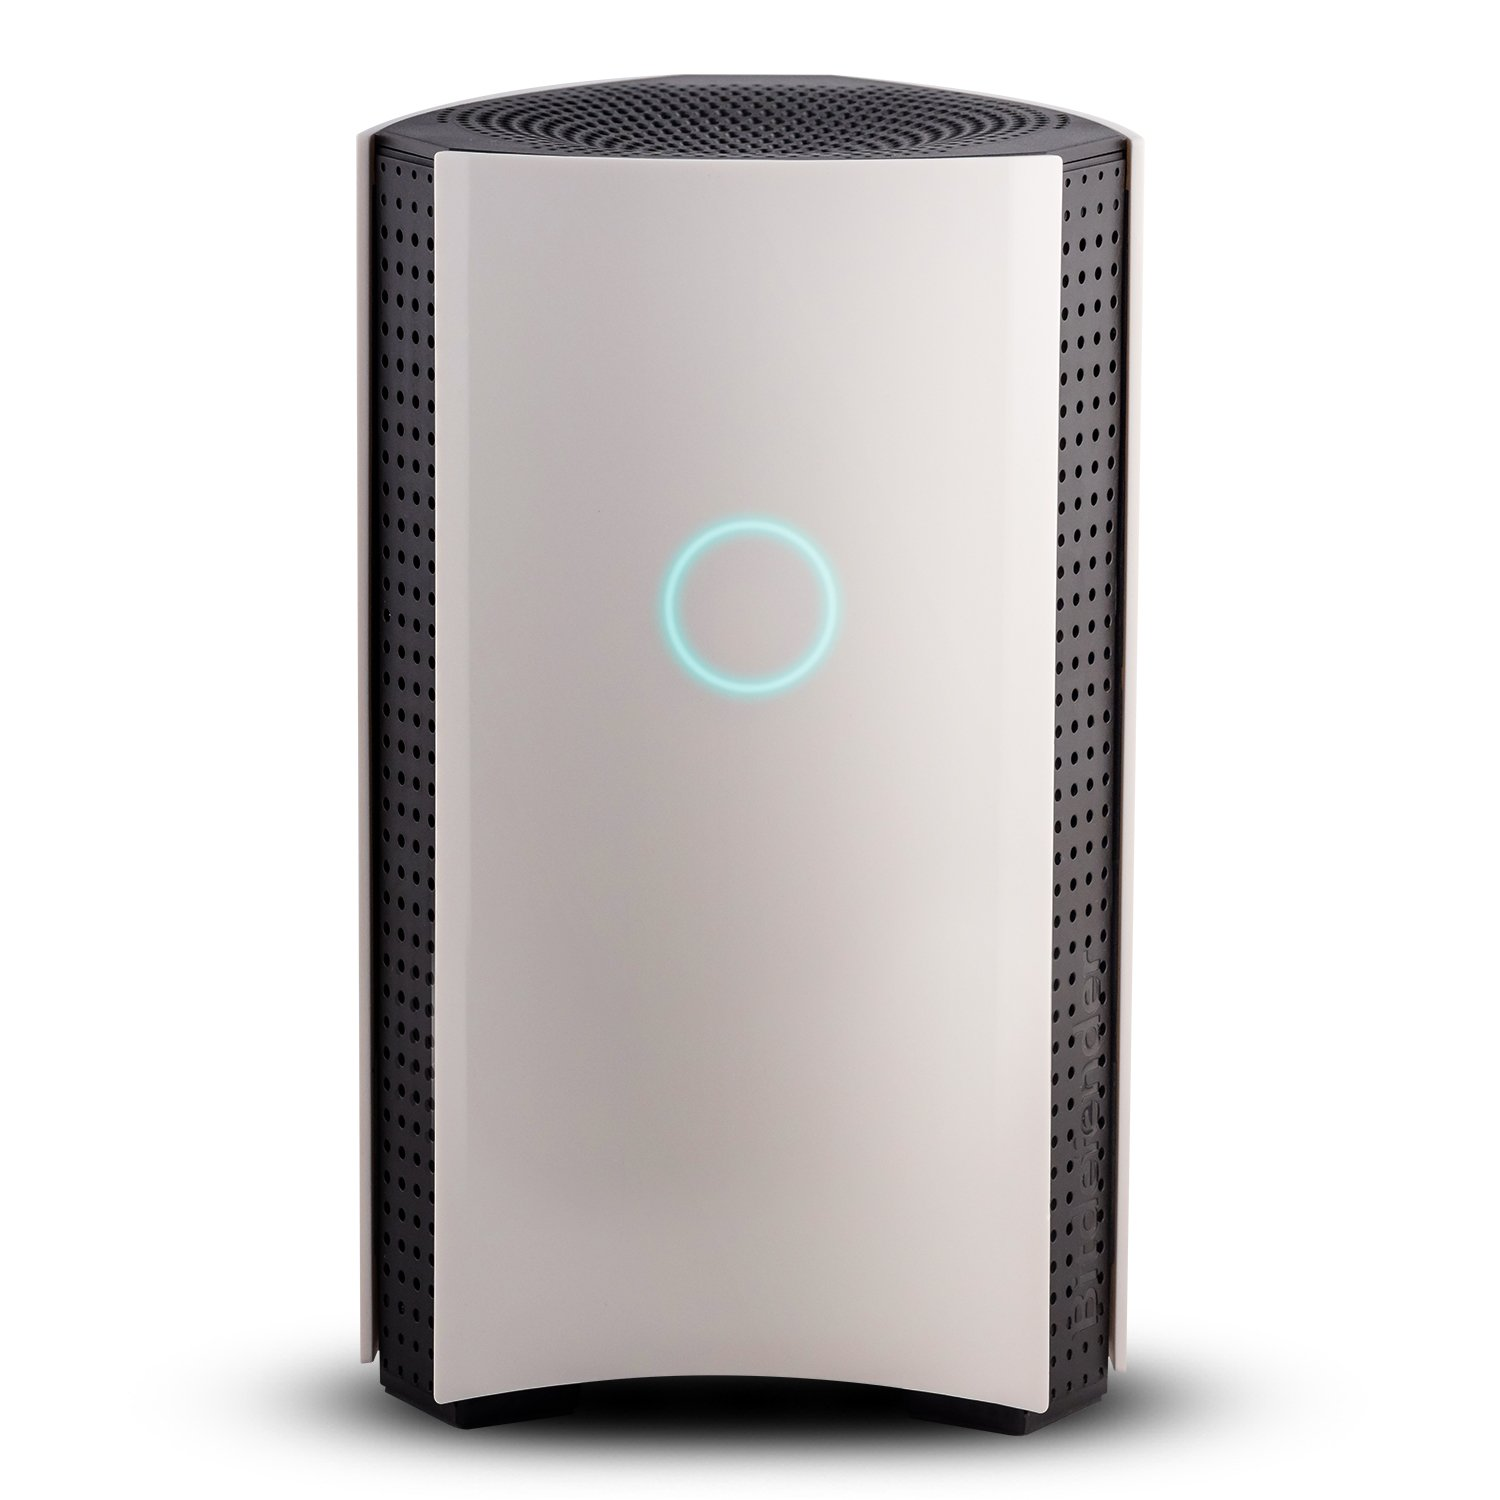 Bitdefender BOX 2 - Next Generation Smart Home Cybersecurity Hub - Plug into your router